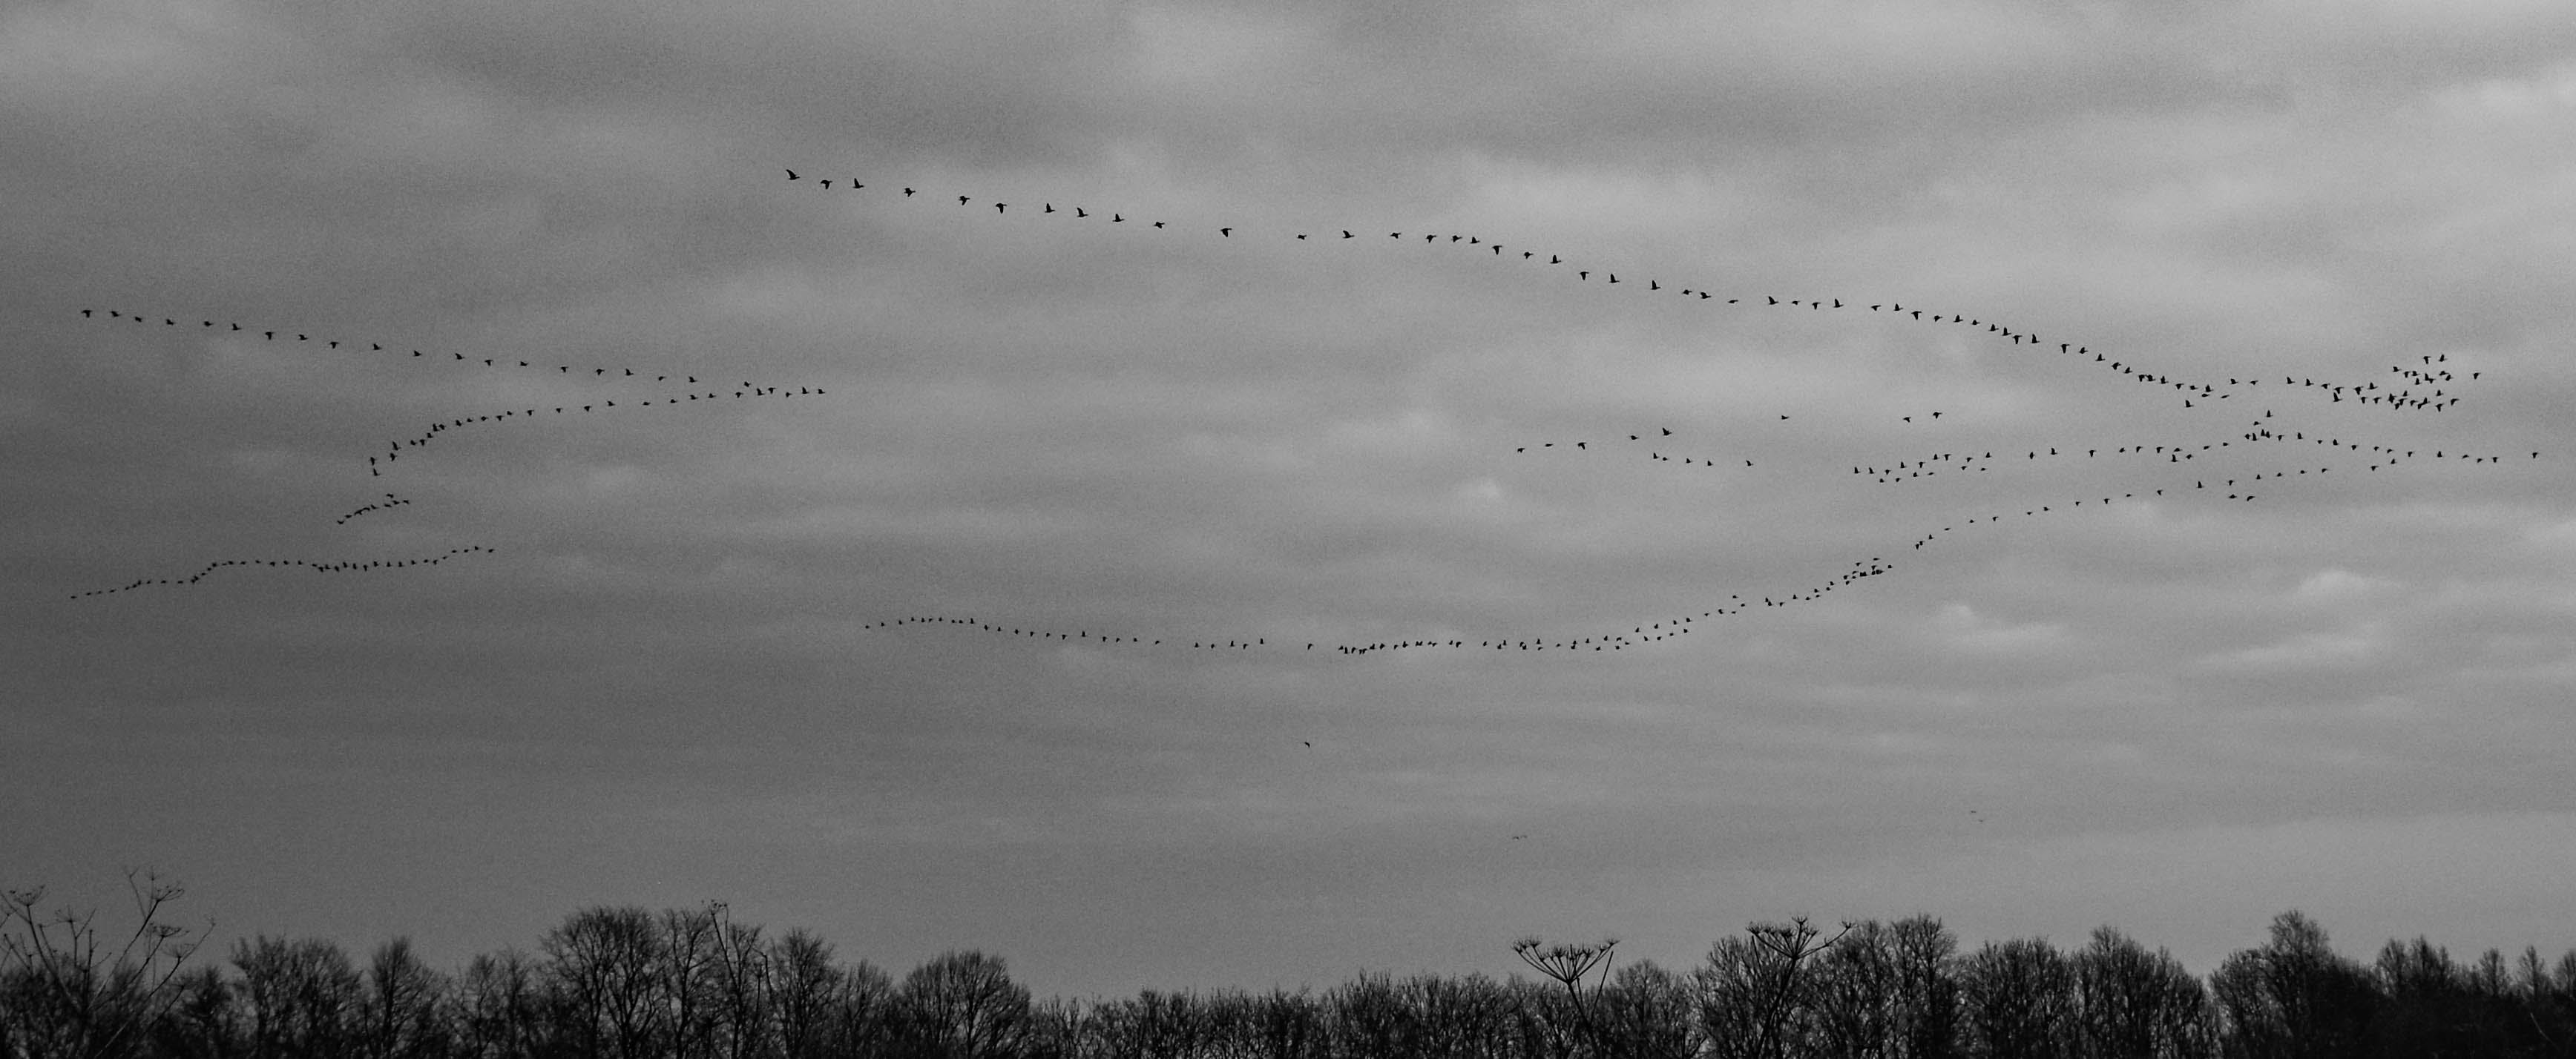 Flock of Flying Bird Formation in Grayscale Photography